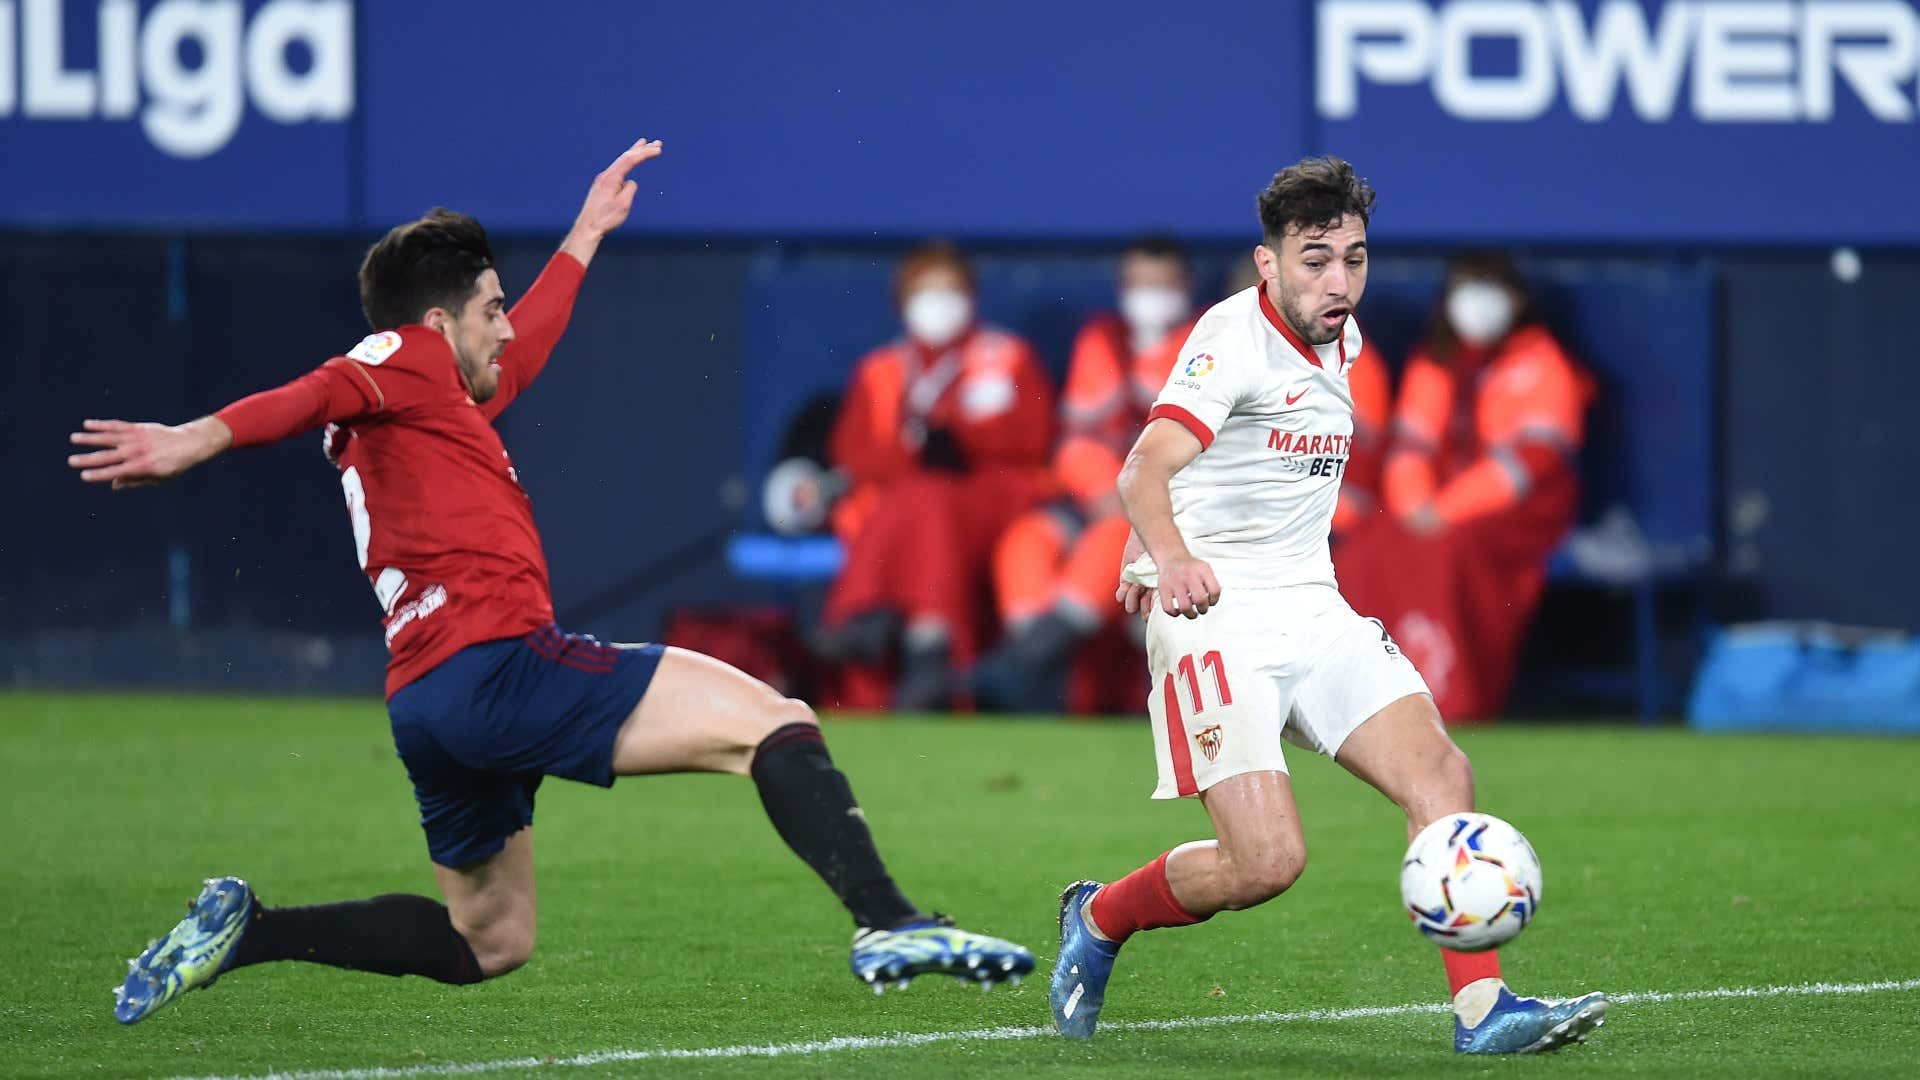 Morocco full of confidence to qualify for 2022 World Cup – Sevilla's Munir